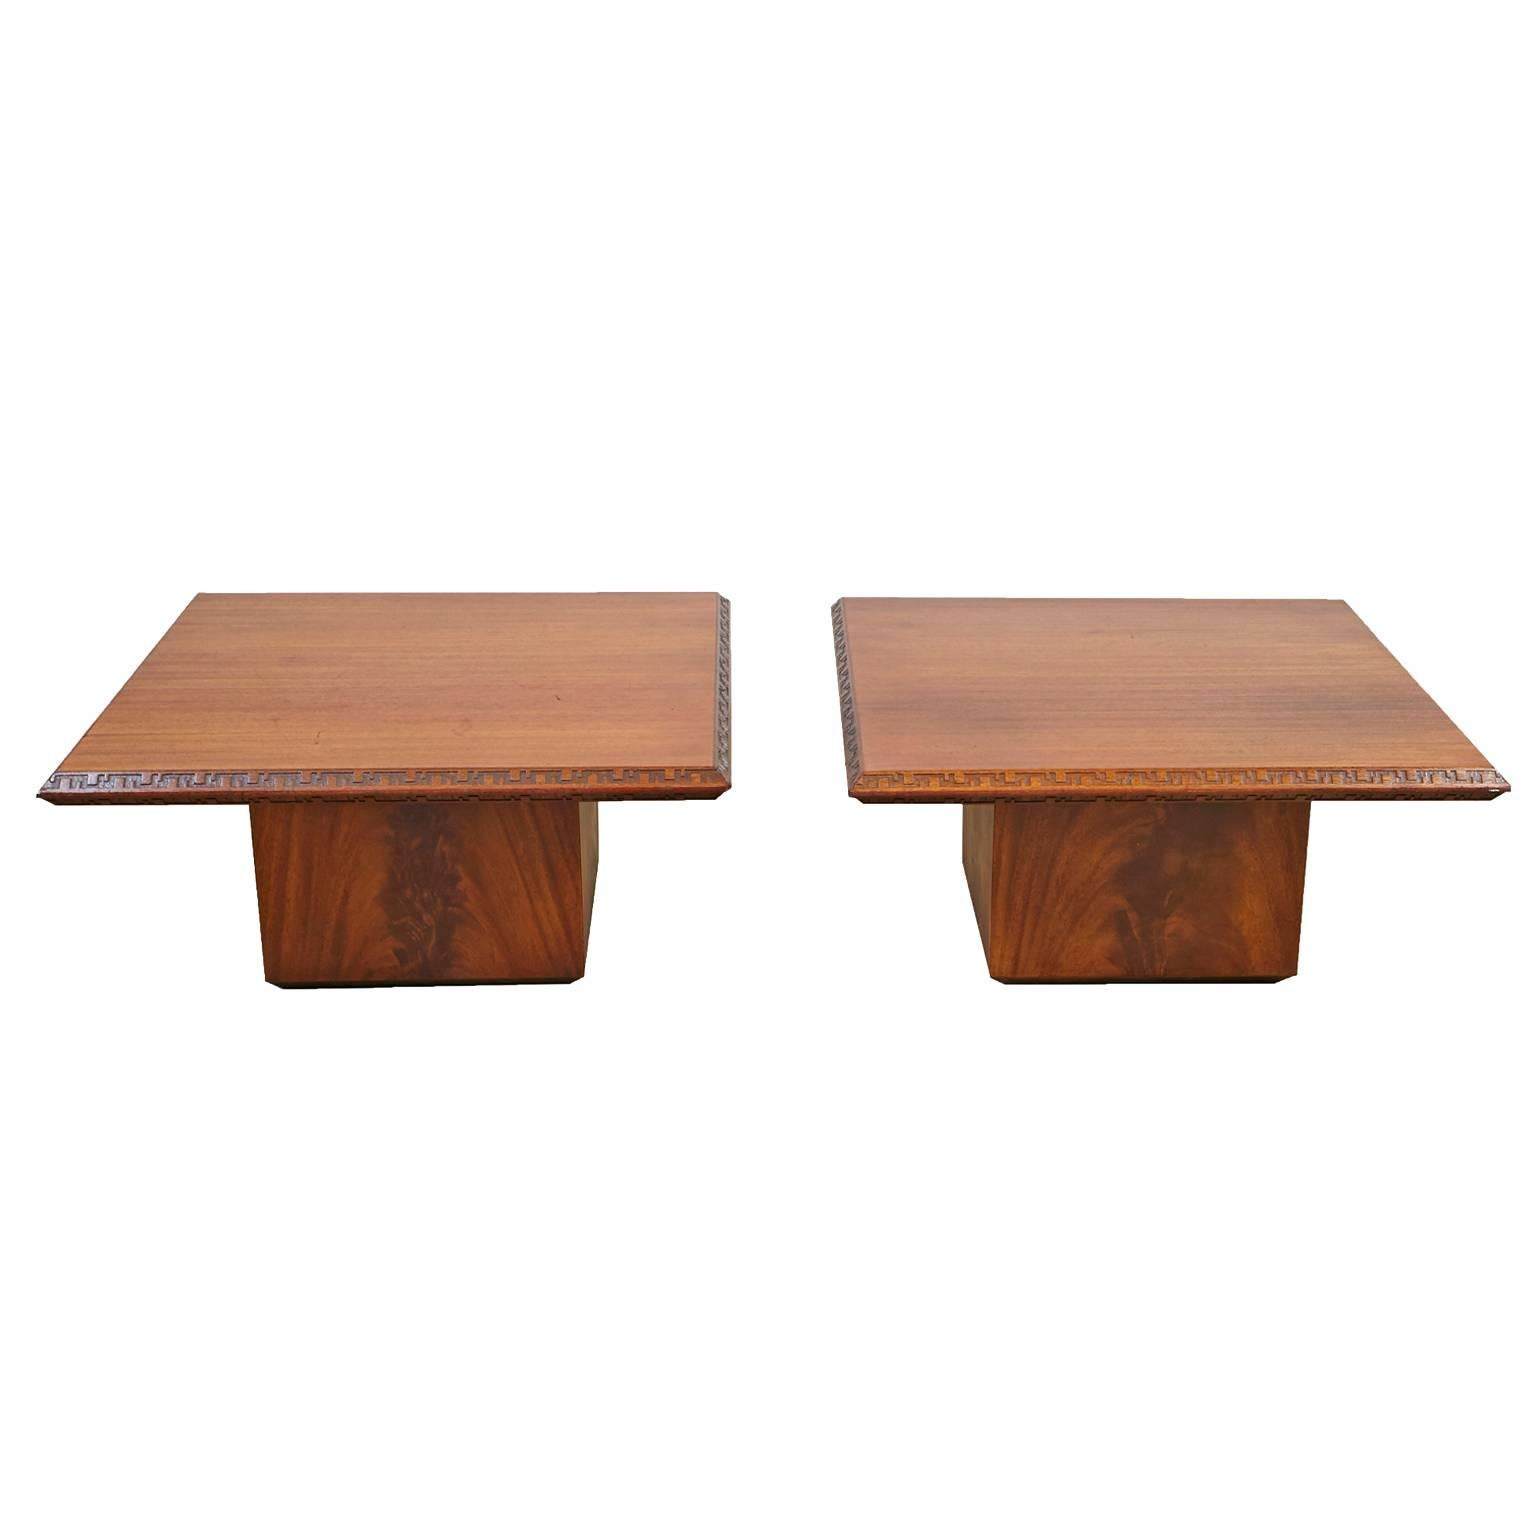 Pair of Frank Lloyd Wright End Tables for Heritage Henredon